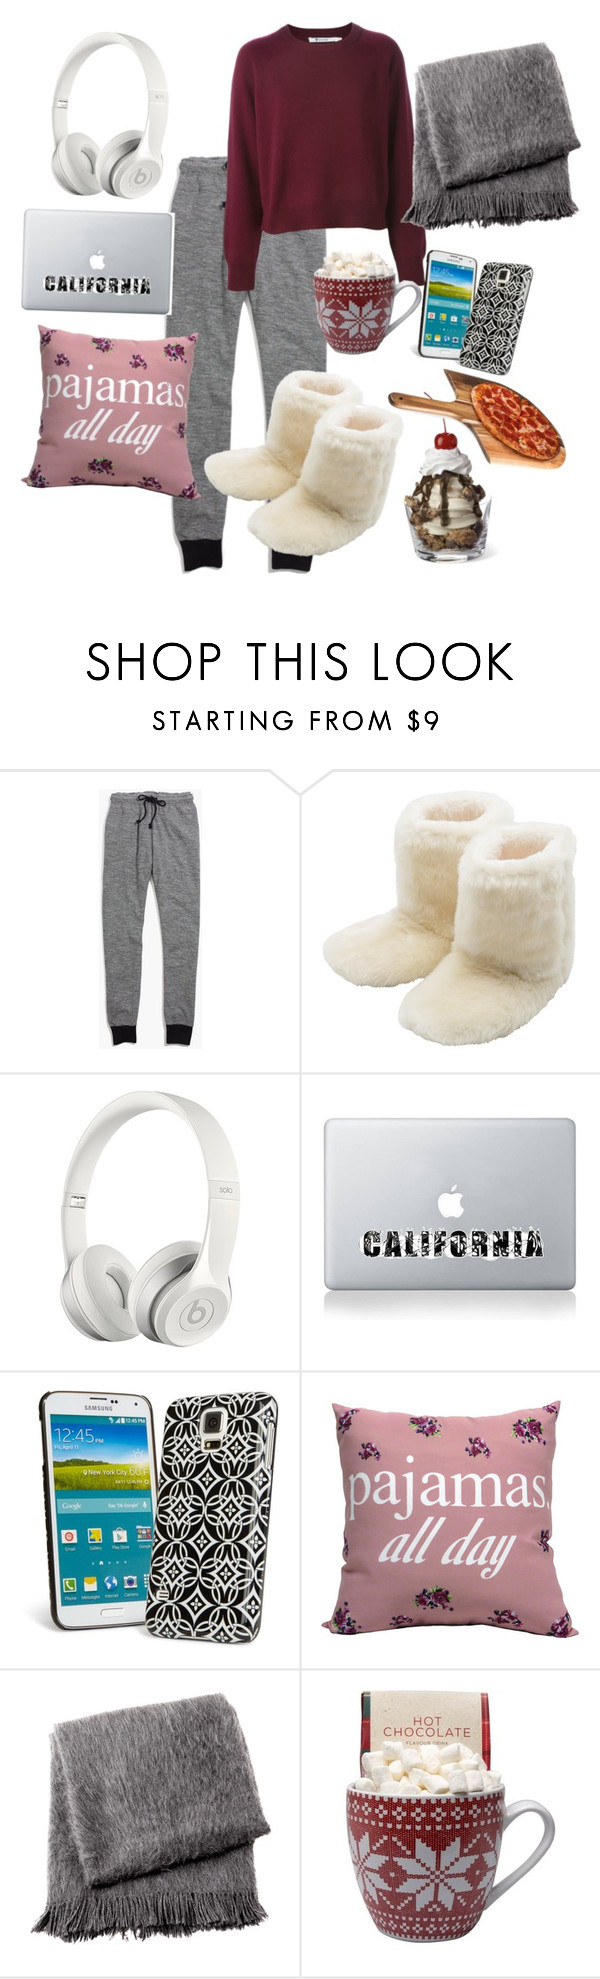 """""""Sad & lonely"""" by ameliefashionista ❤ liked on Polyvore featuring Madewell, M&Co, Beats by Dr. Dre, Vera Bradley, From the Road and Picnic Time"""